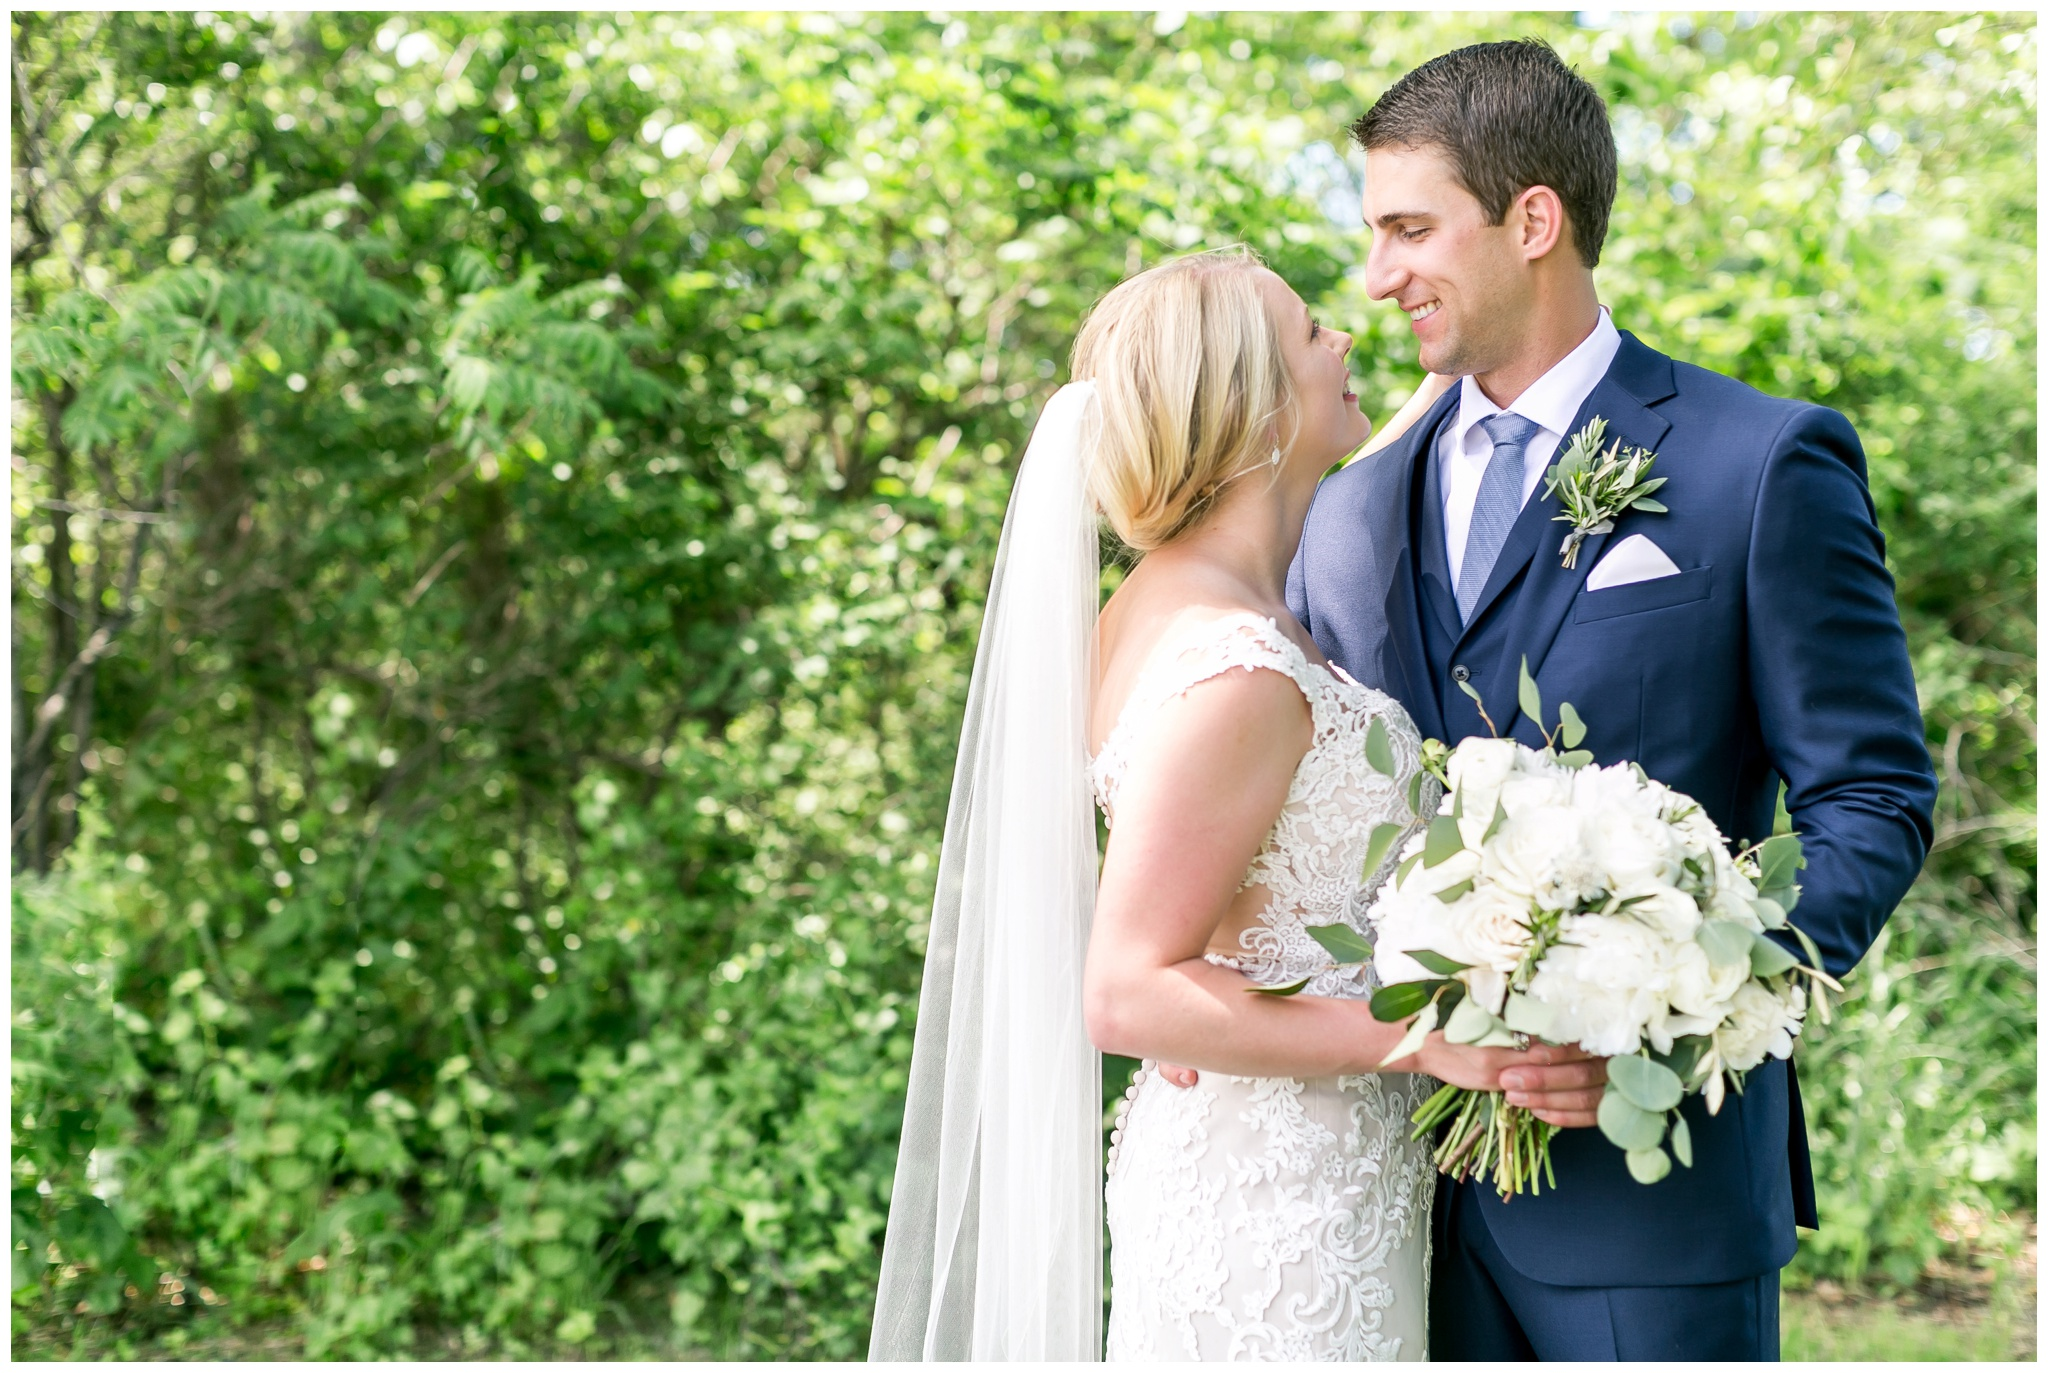 private_estate_wedding_stoughton_wisconsin_wedding_caynay_photo_3841.jpg